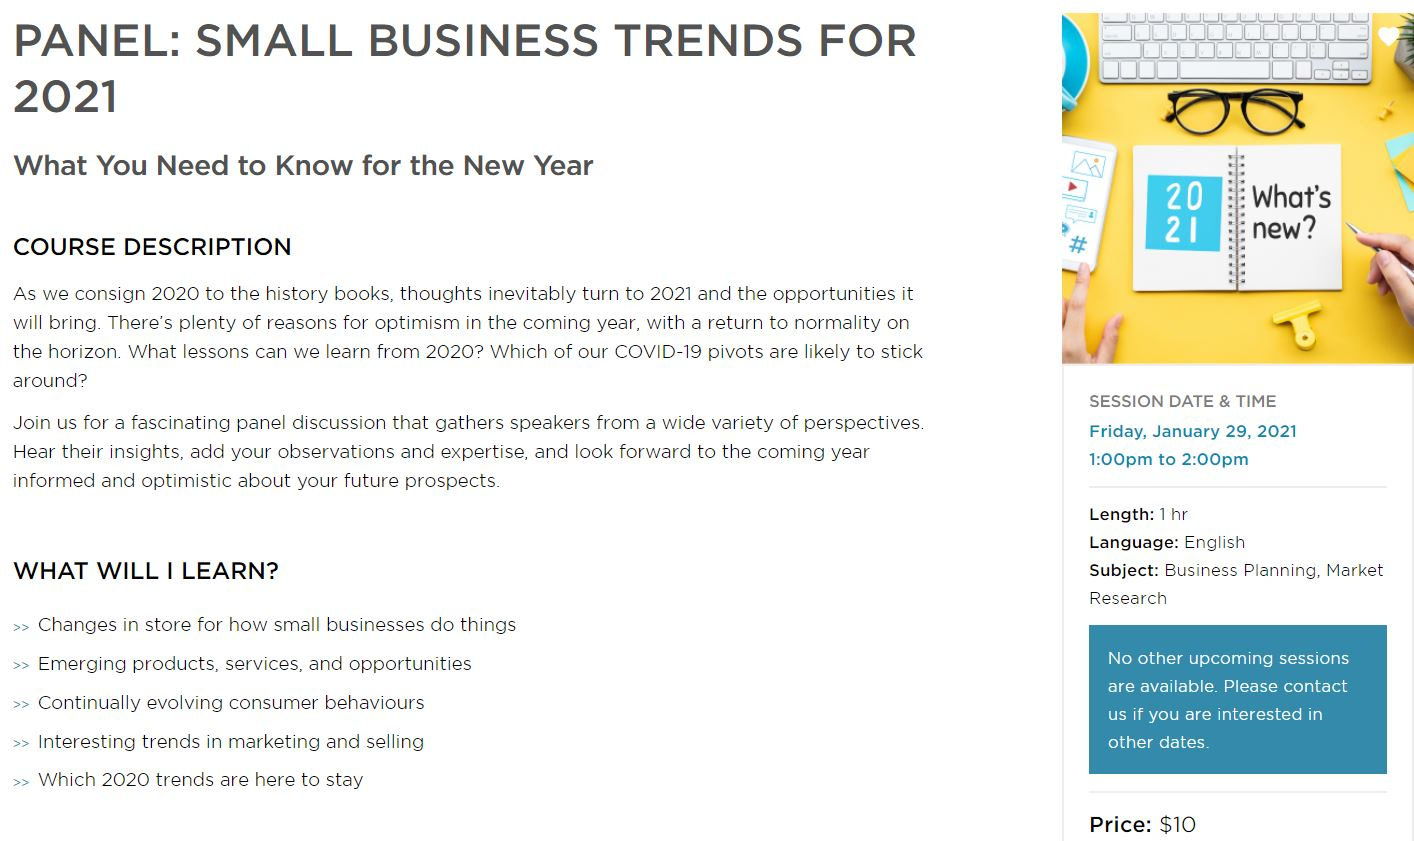 Small Business BC January 29 Webinar: Small Business Trends for 2021